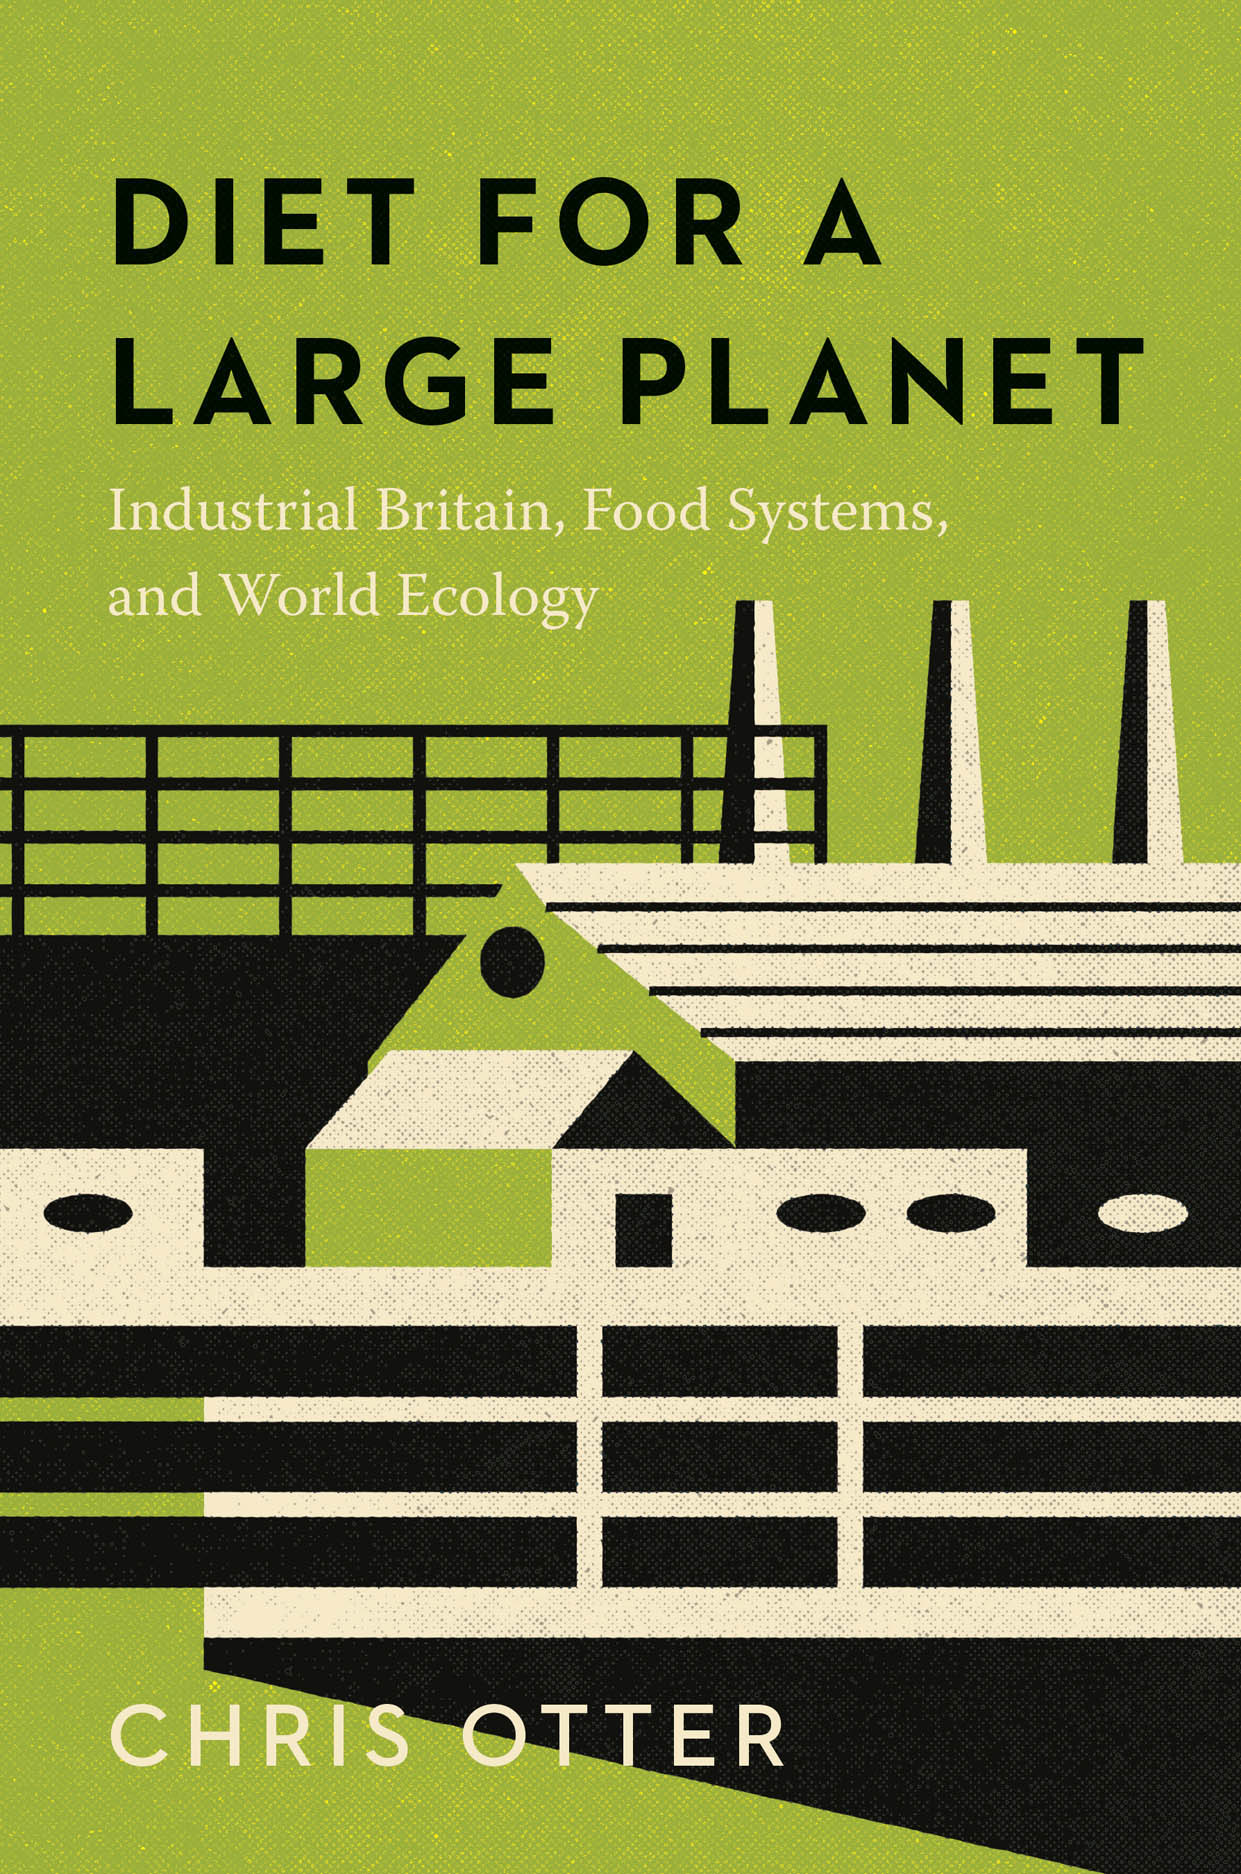 Diet for a Large Planet: Industrial Britain, Food Systems, and World Ecology